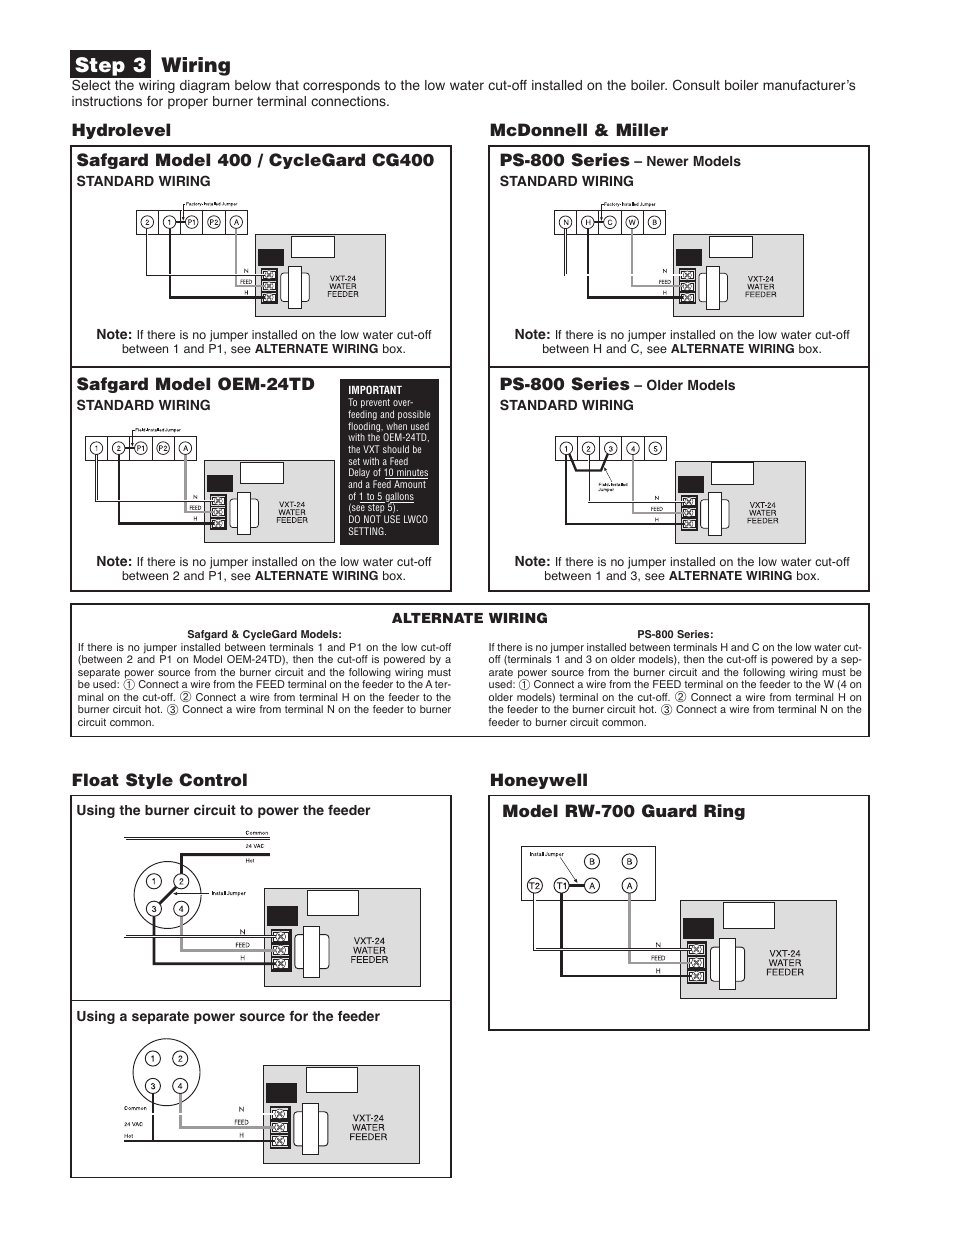 hydrolevel vxt 24 page2 step 3 wiring, mcdonnell & miller, ps 800 series hydrolevel vxt vxt 24 water feeder wiring diagram at n-0.co